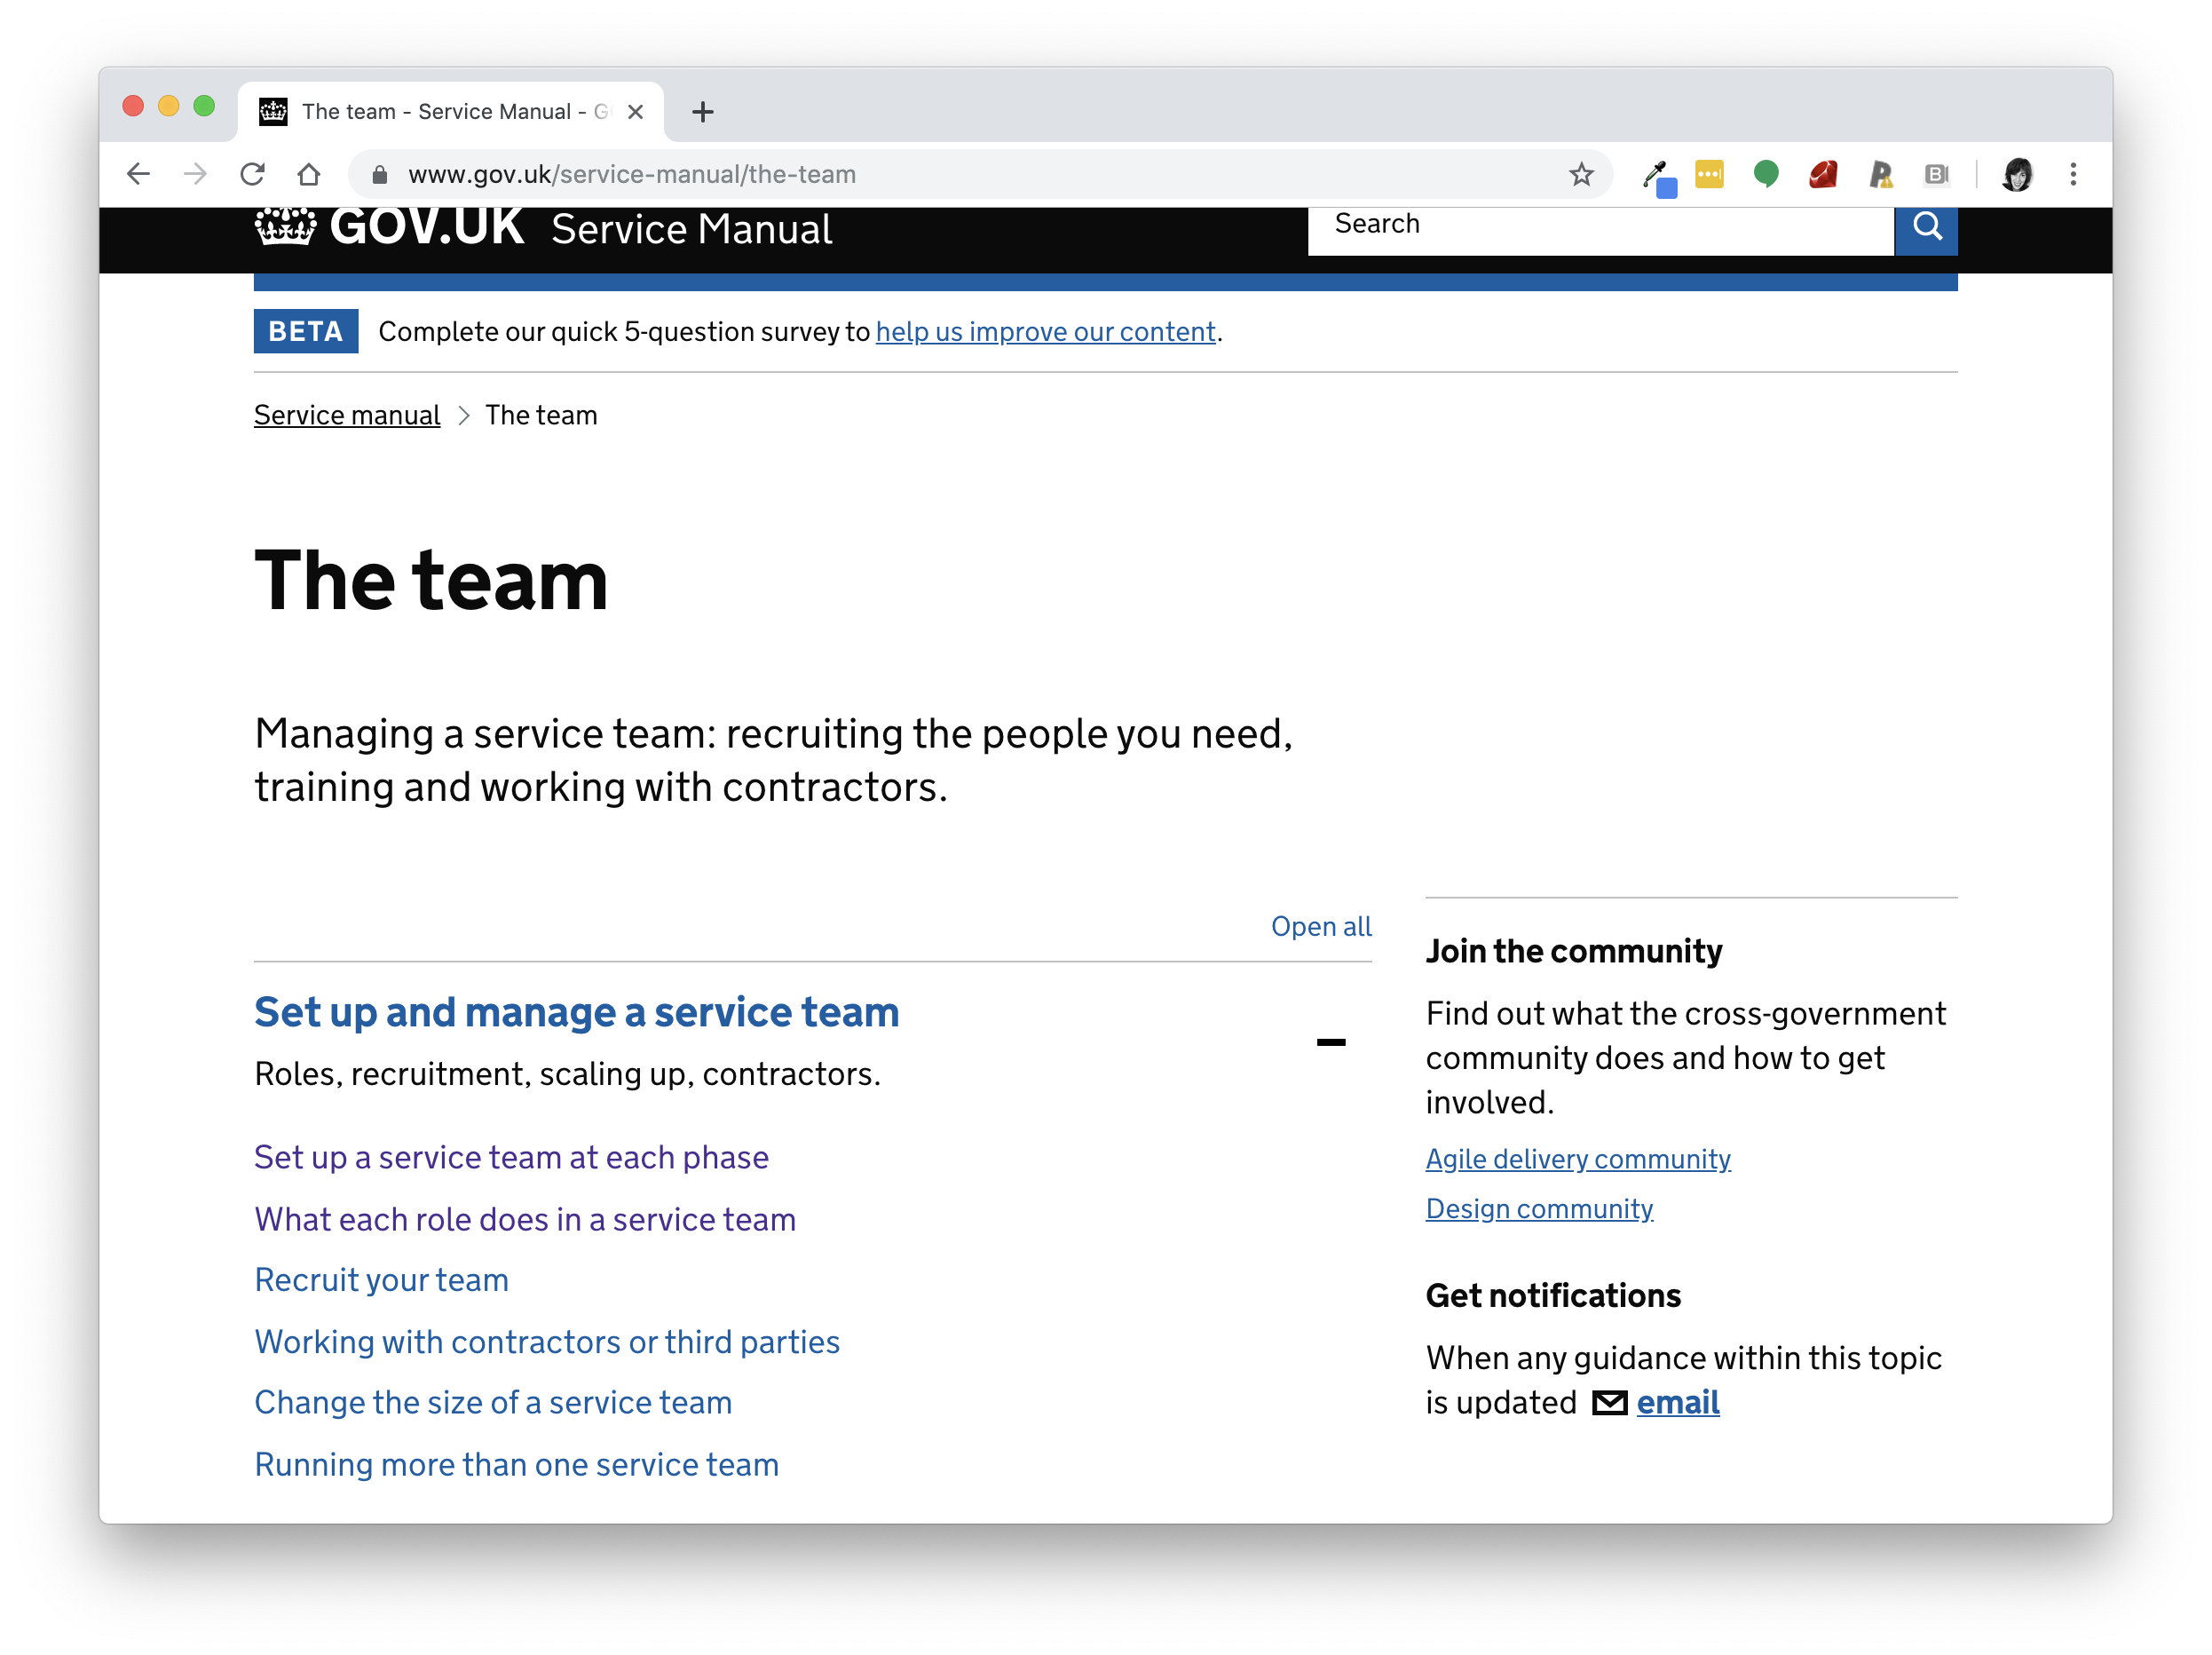 Image of the team page on the GOV.UK service manual